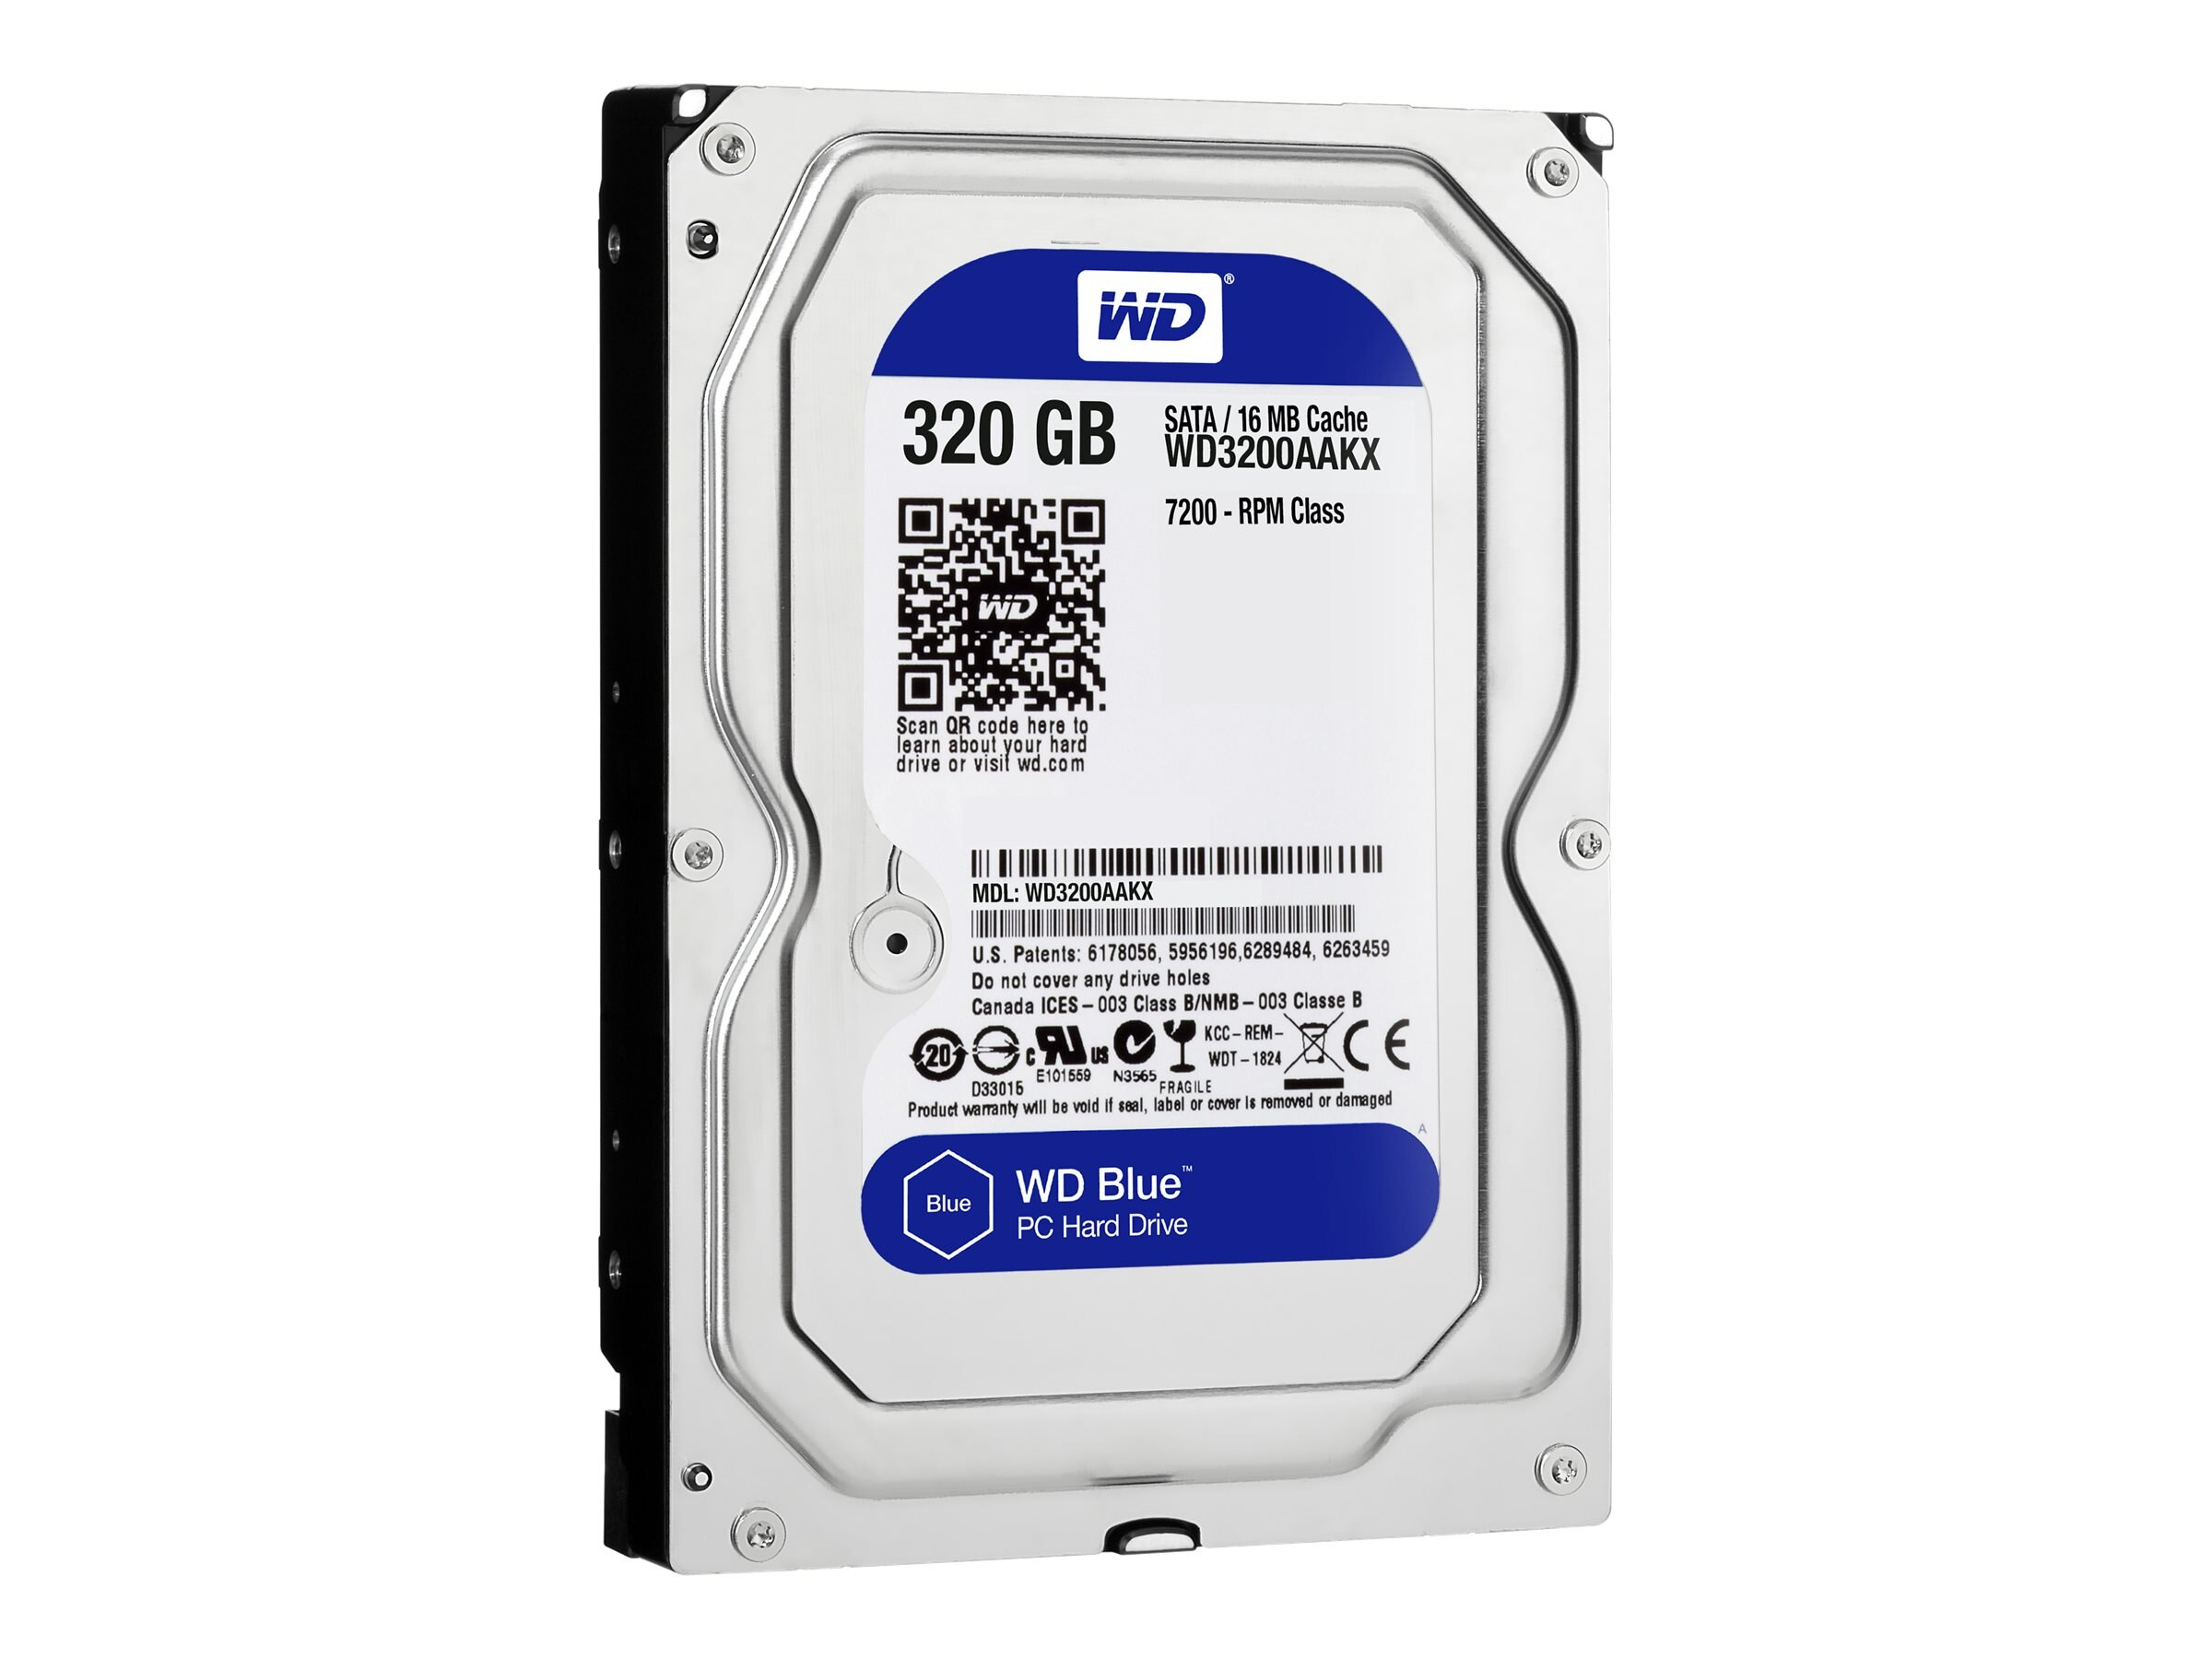 WD 320GB WD Caviar Blue SATA 6Gb s 3.5 Internal Hard Drive - 16MB Cache, WD3200AAKX